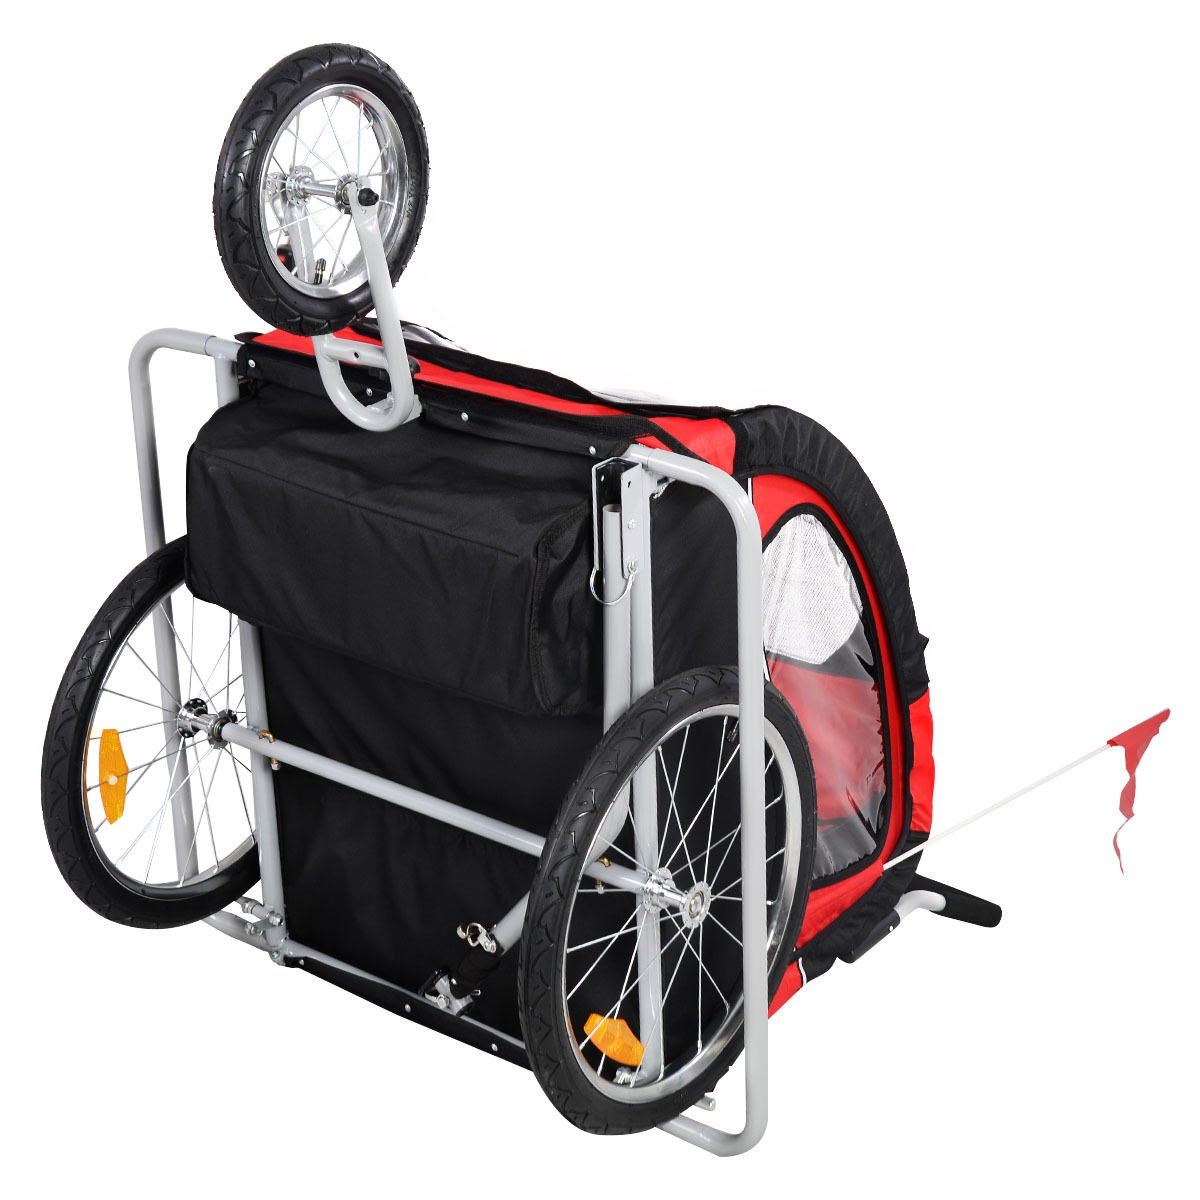 Bicycle Carrier Double Baby Bike Trailer Jogger Stroller 2 in 1 by Caraya (Image #7)